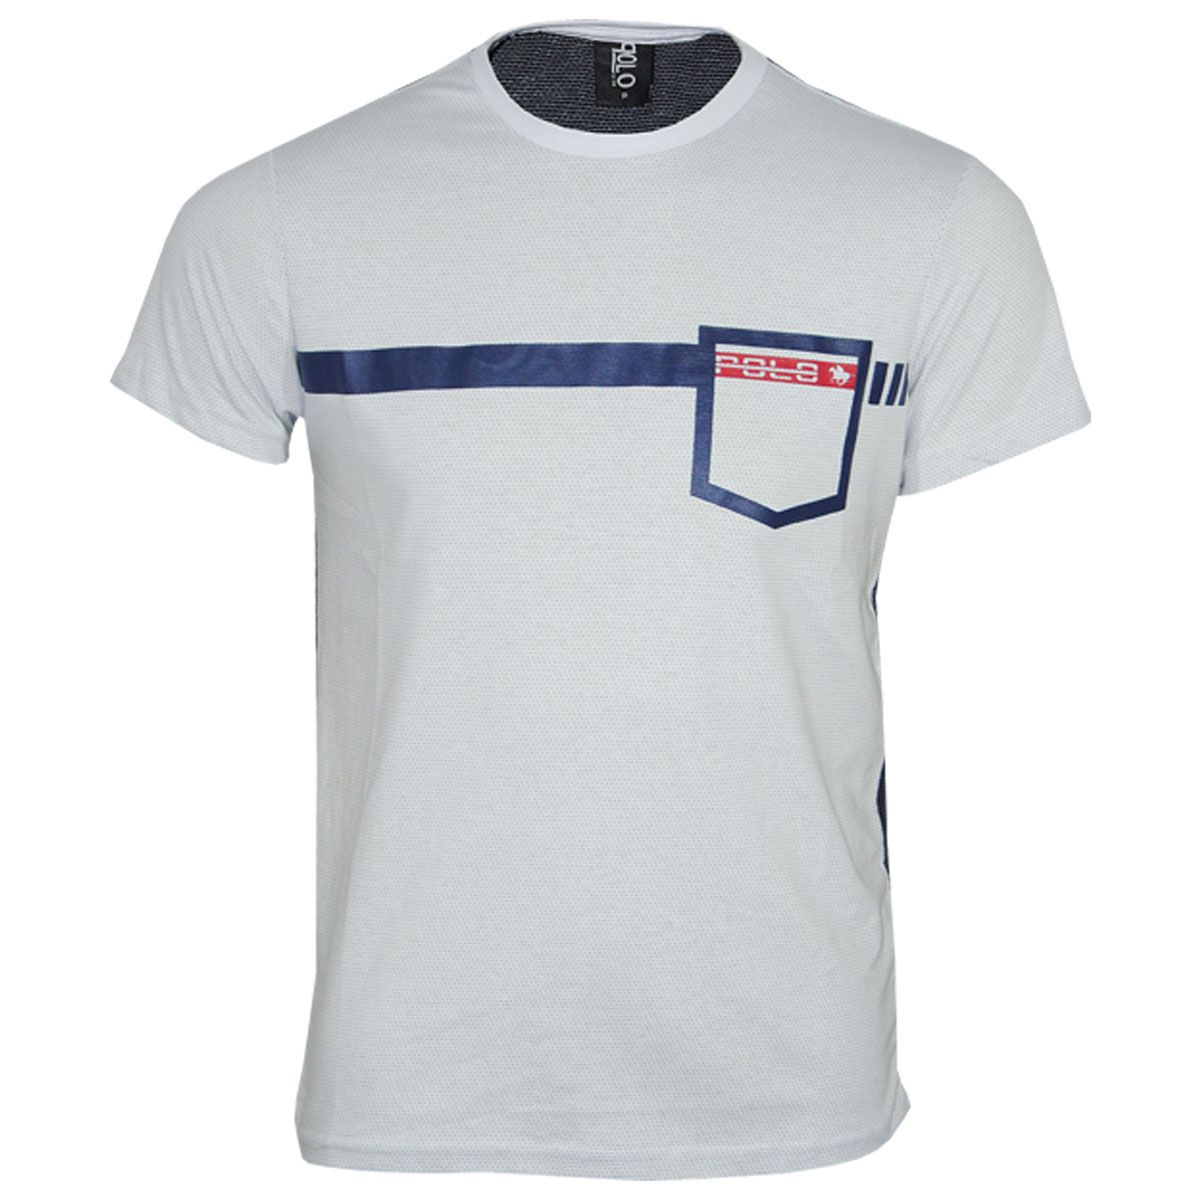 CAMISETA SWAG POLO RG518 REF 294